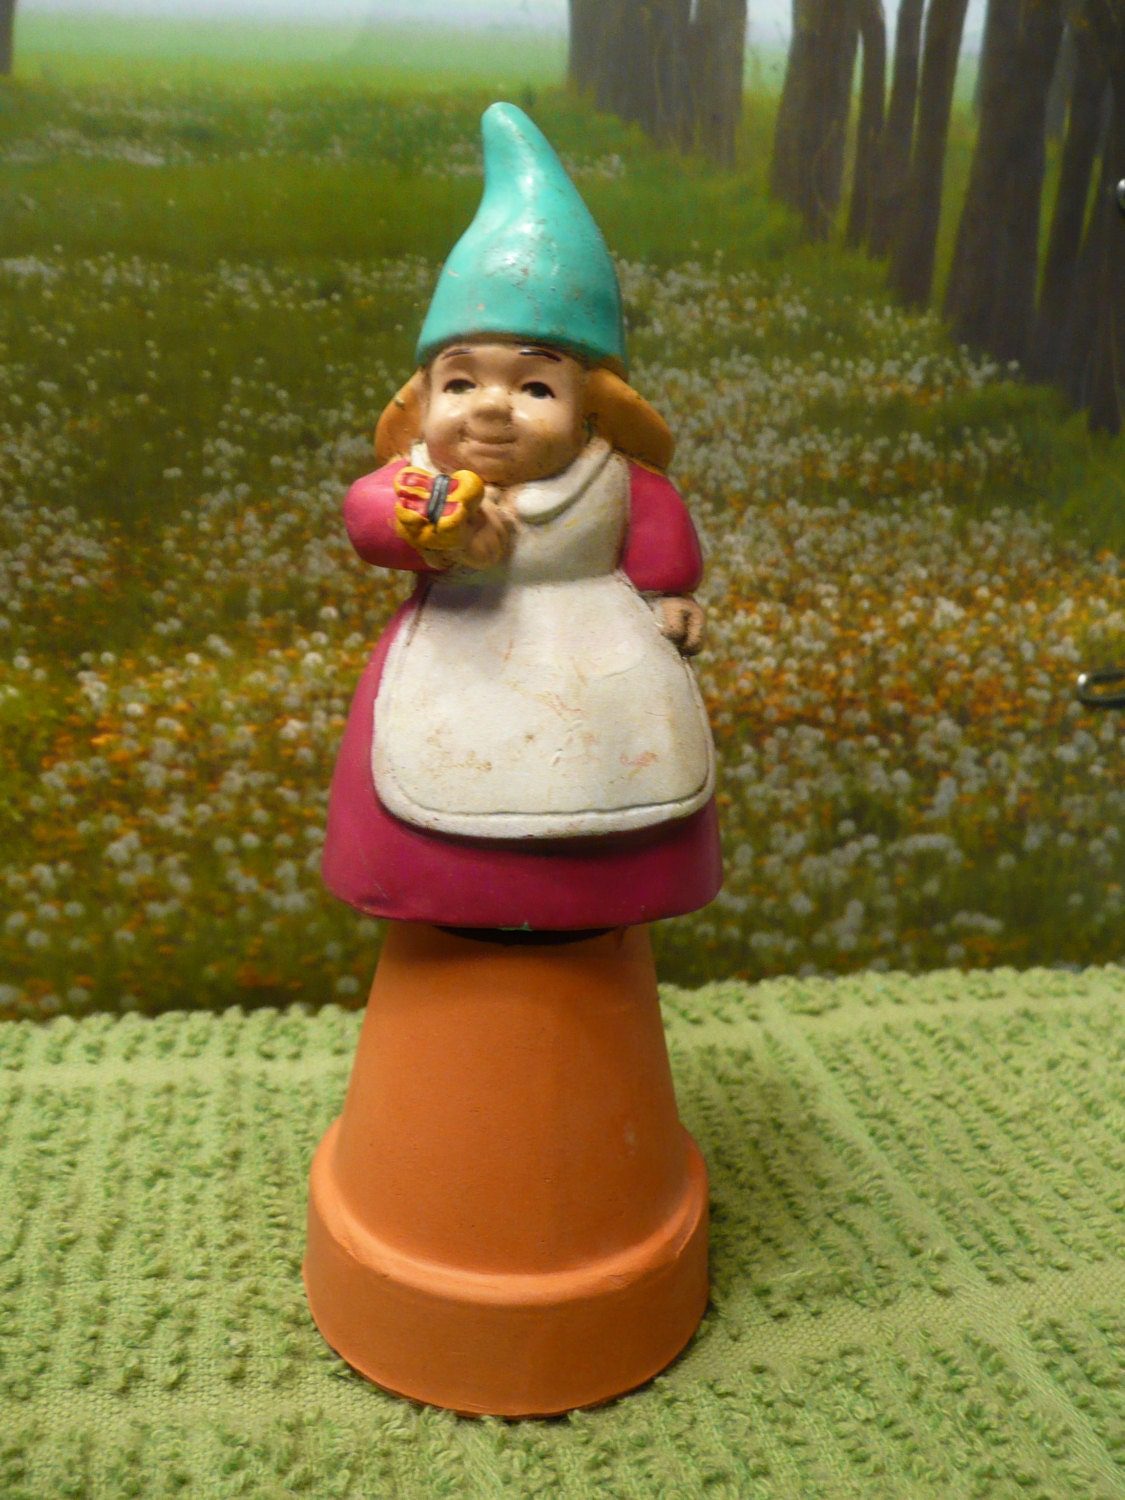 Miniature Red Female Girl Garden Gnome Stake Figurine With